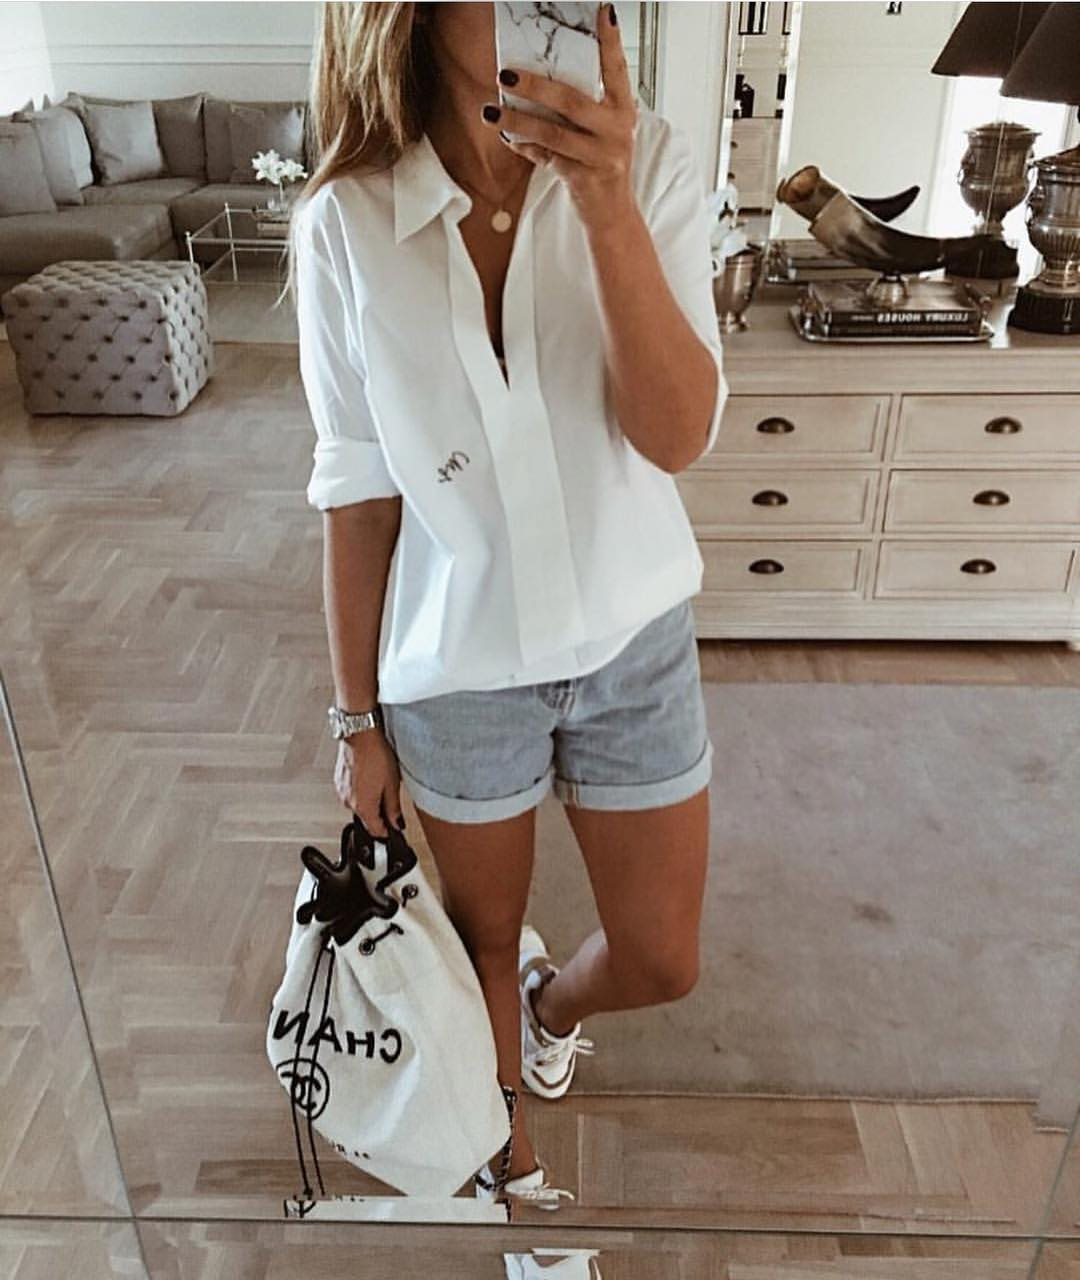 Classic Summer Basics: White Shirt, Denim Shorts, White Sneakers 2020